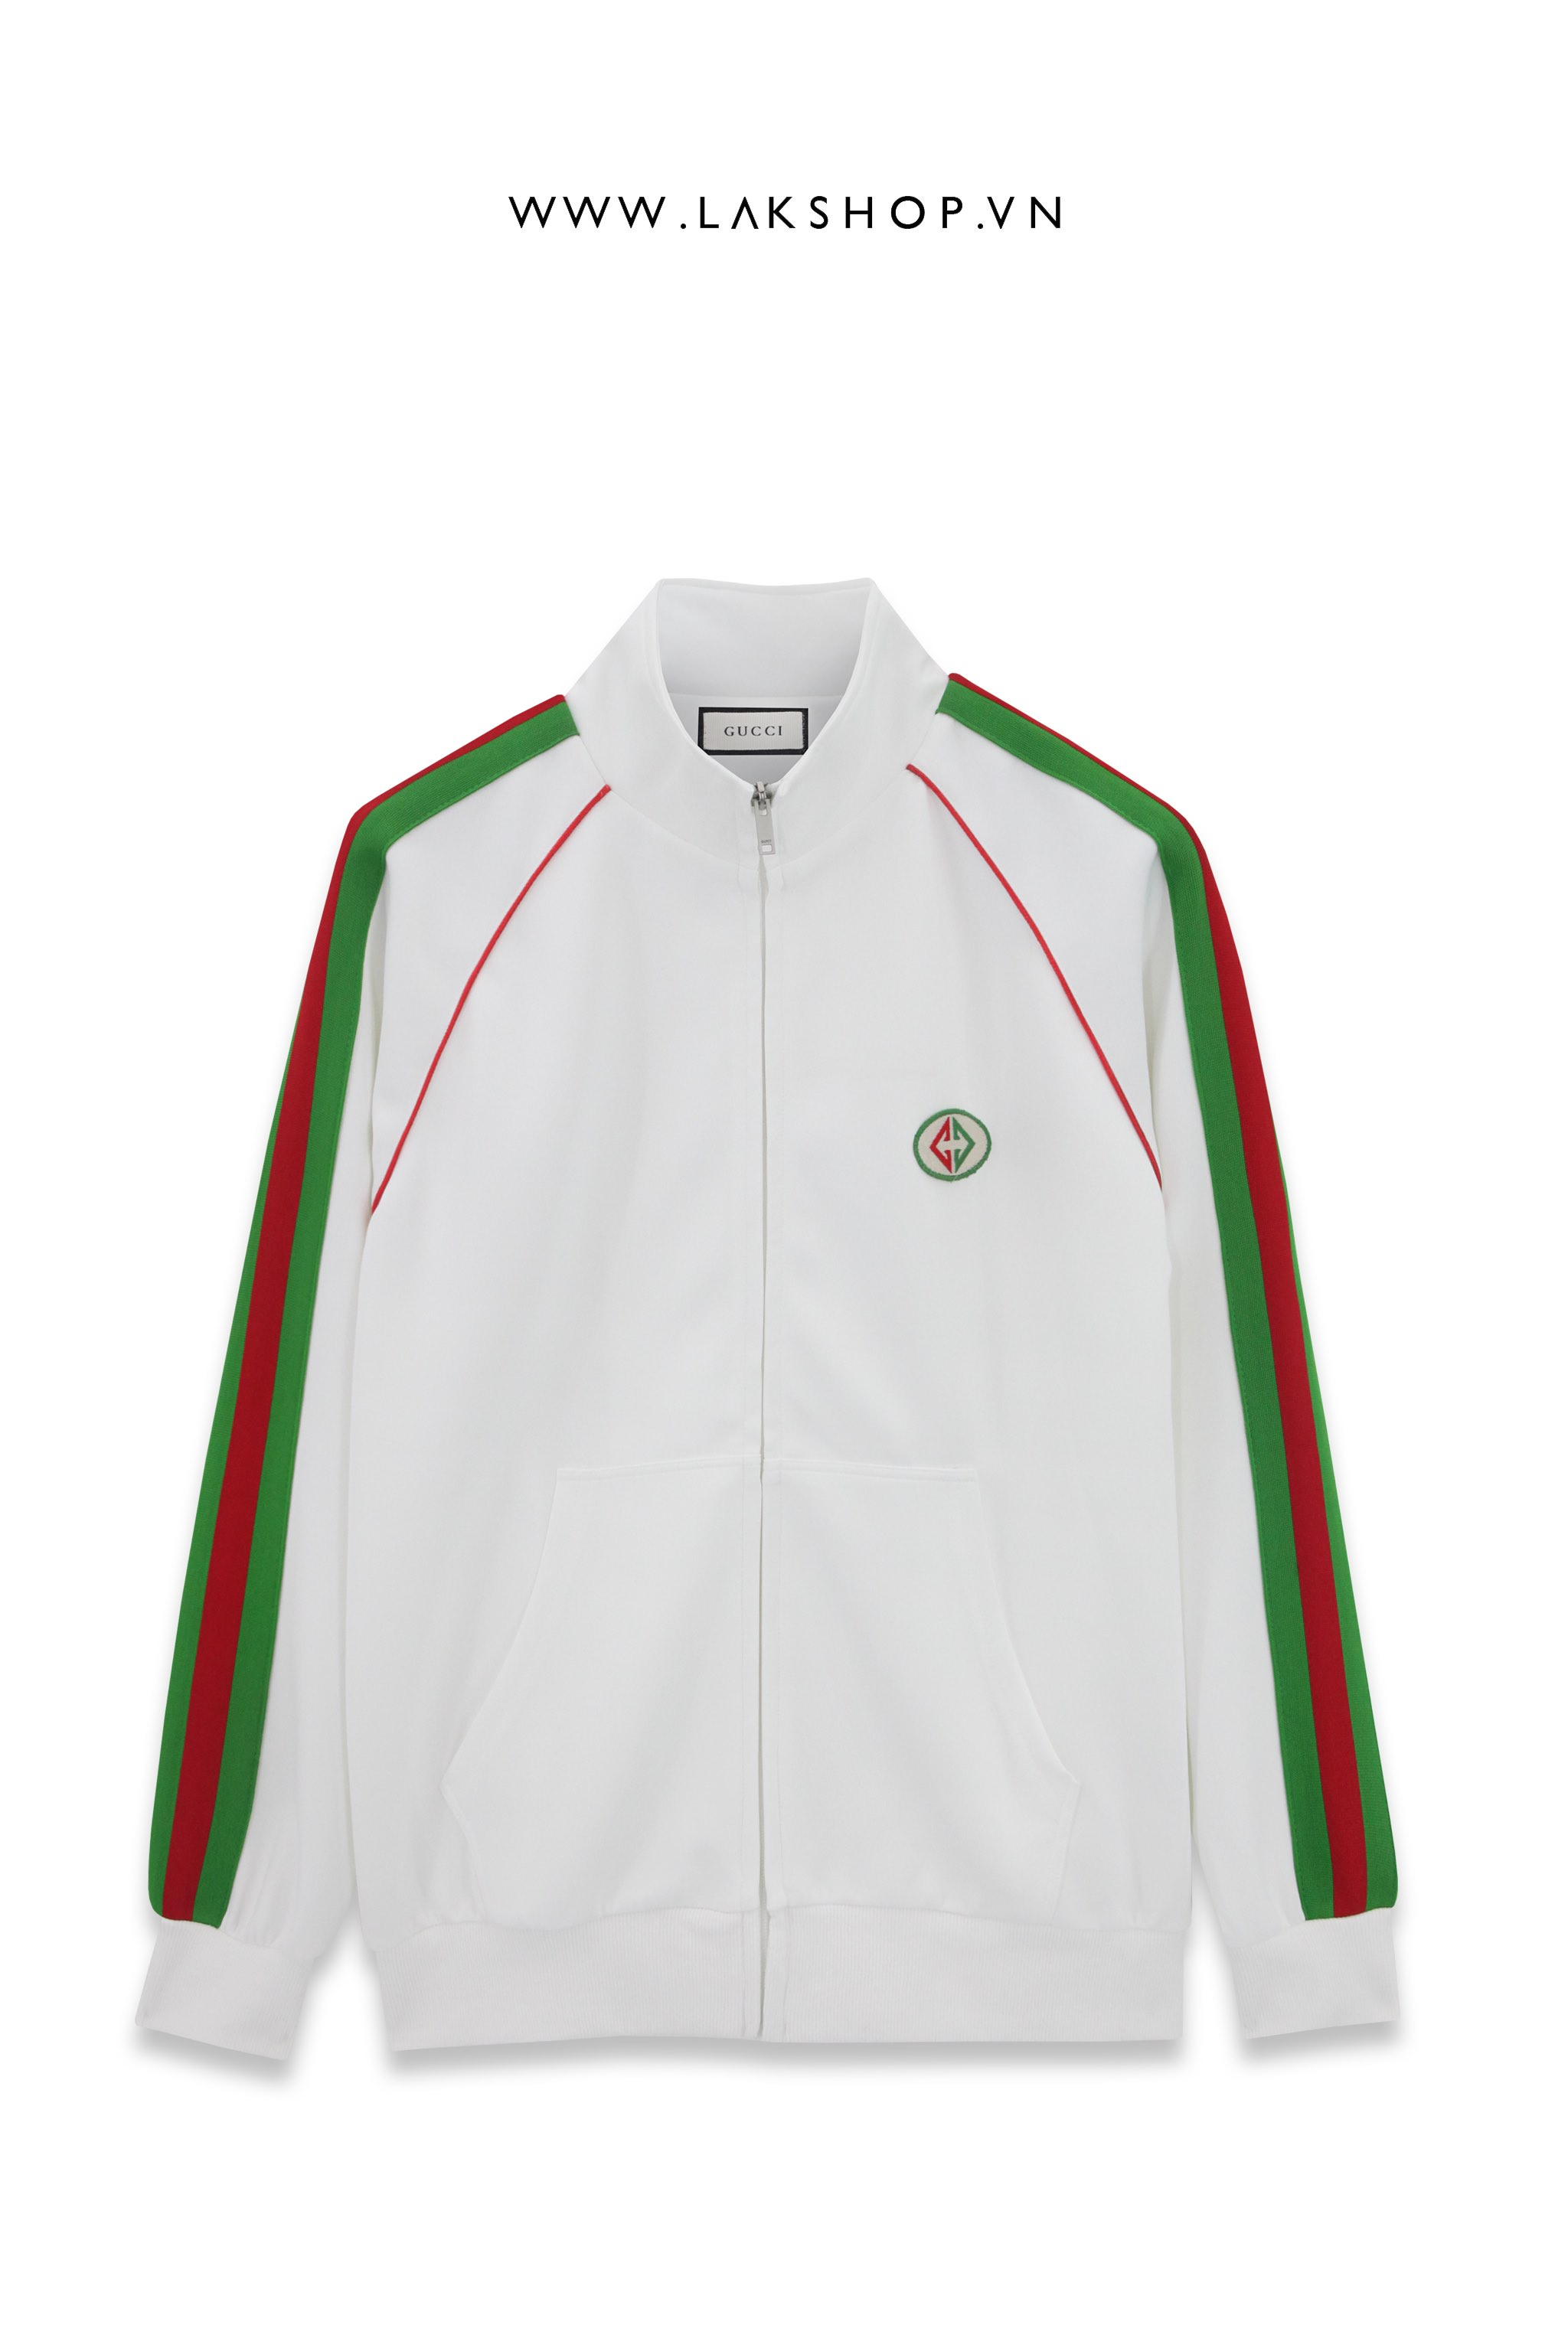 Gucci White/Green Logo Track Jacket